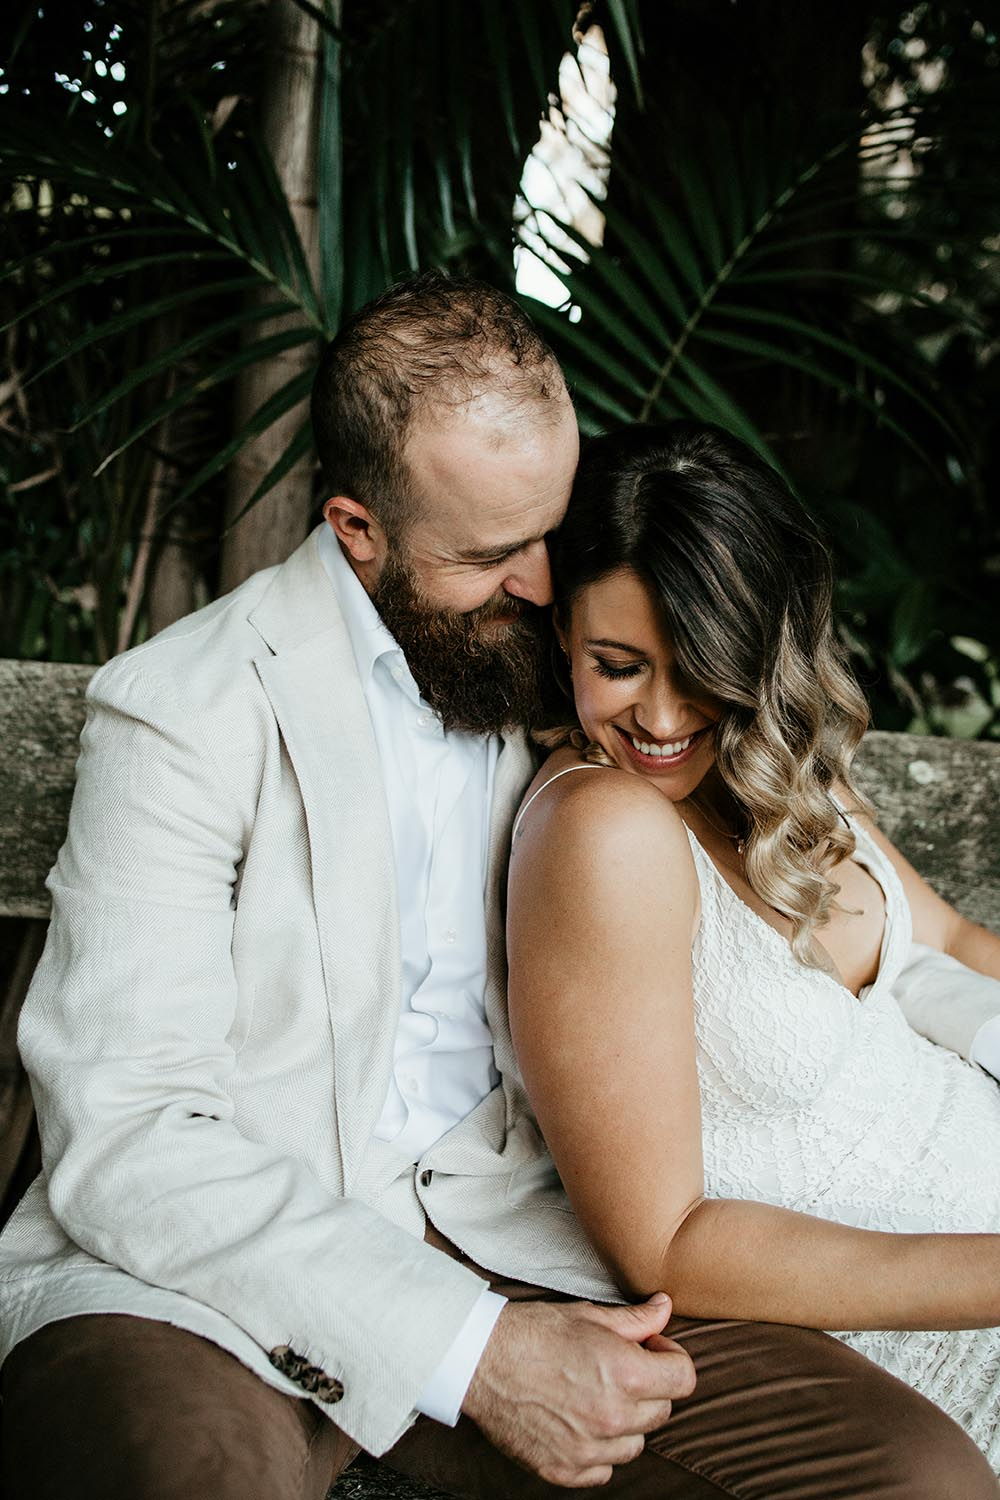 Bride and groom sitting cuddling smiling - coffscoast wedding photographer - Nambucca valley wedding photographer - Nambucca heads wedding photographer - Bellingen photographer - elopment - couple in love